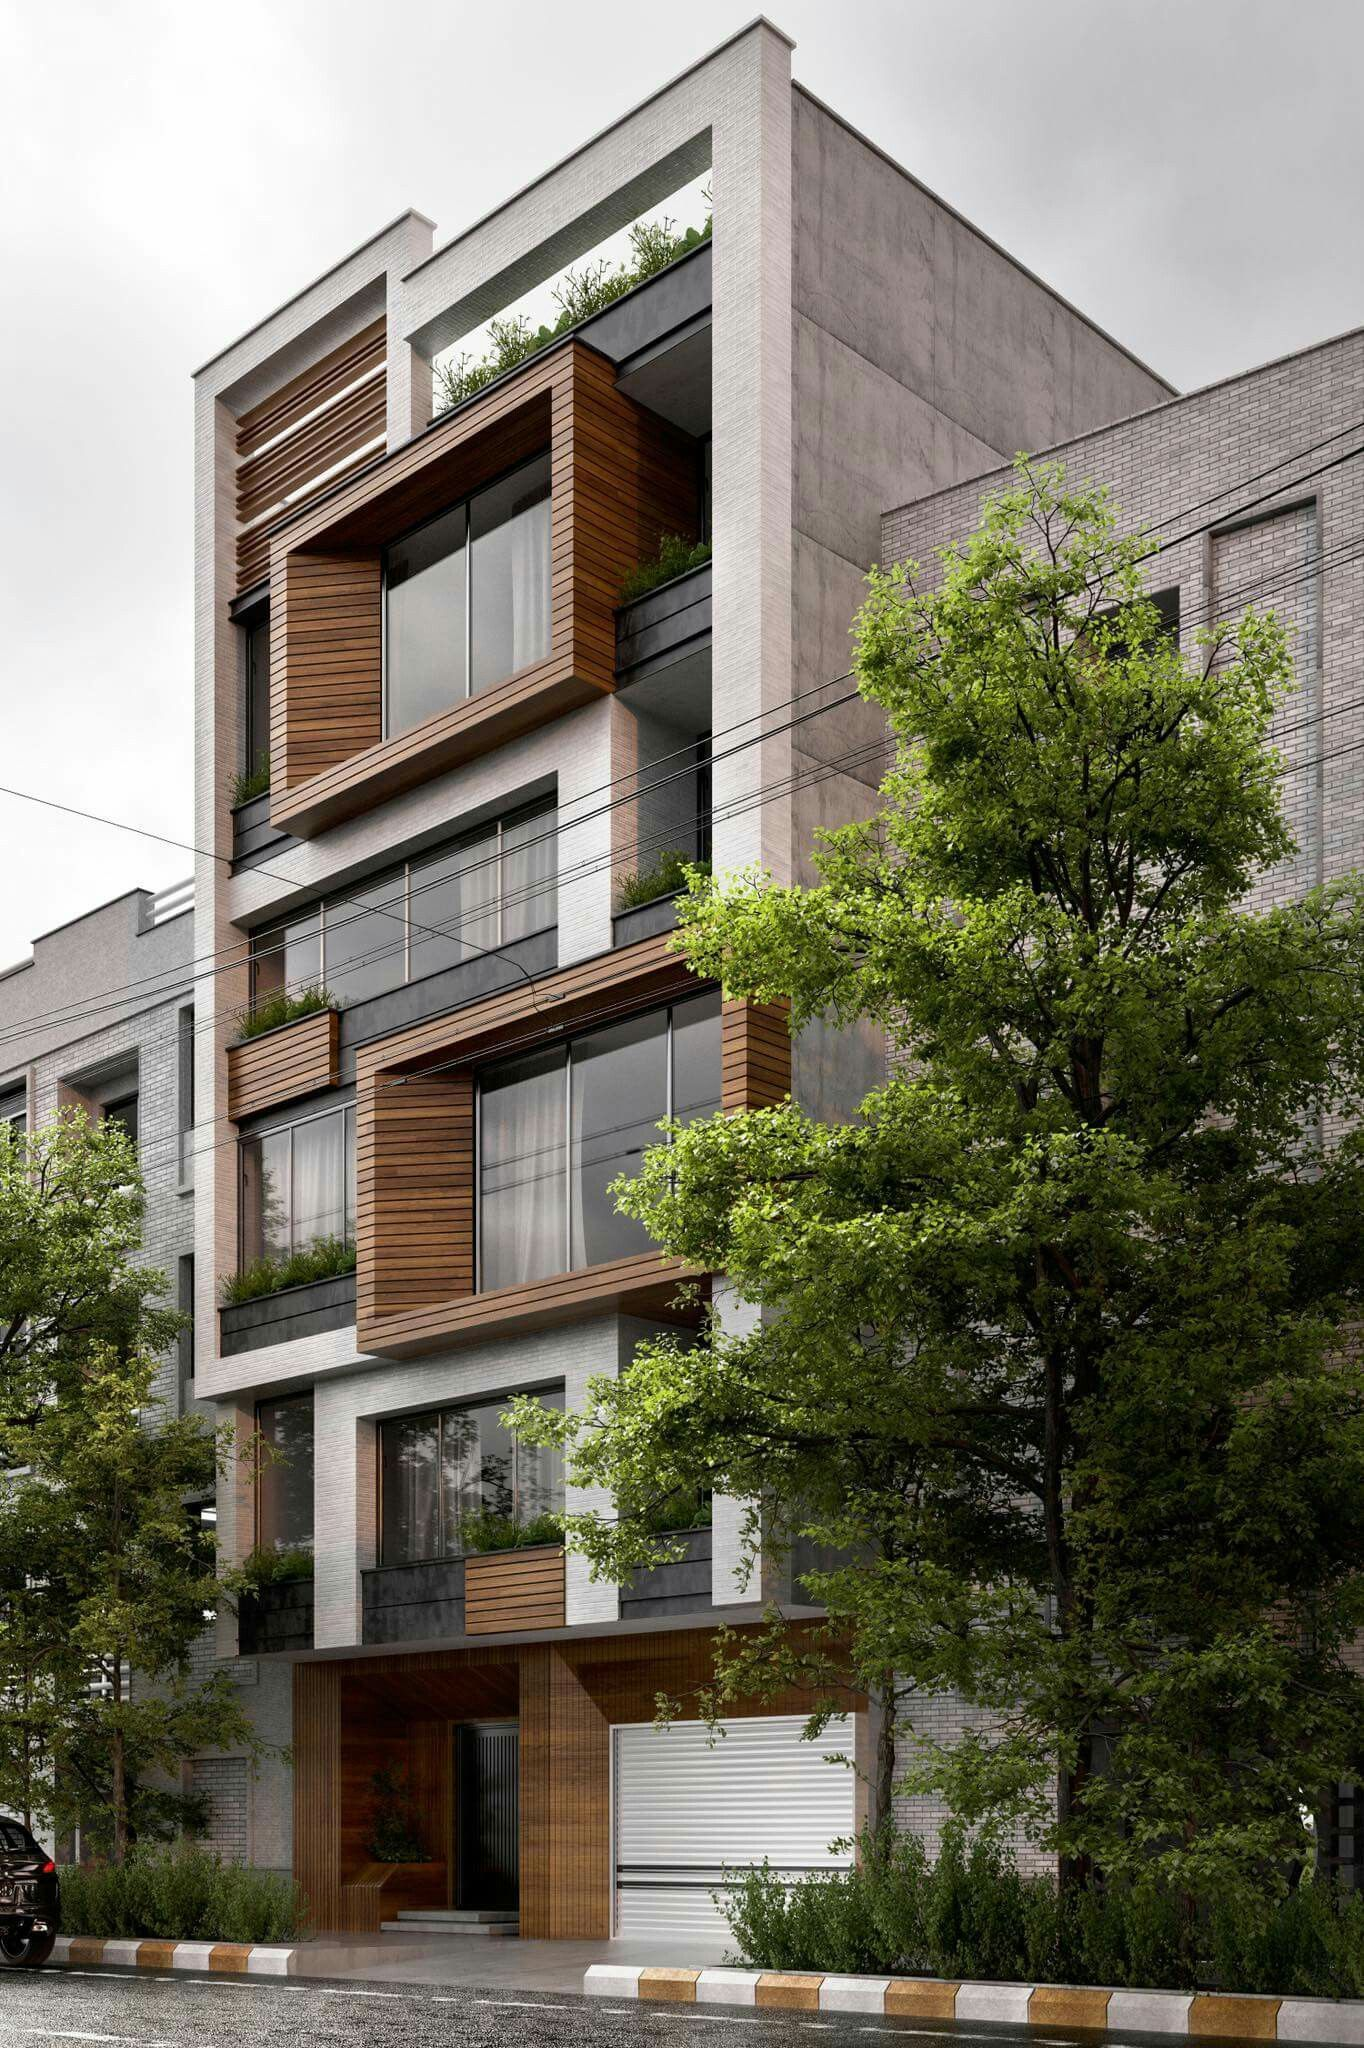 Pin By 梓堯 廖 On Apartment Buildings In 2020 Facade Architecture Design Modern Architecture Building Residential Architecture Apartment